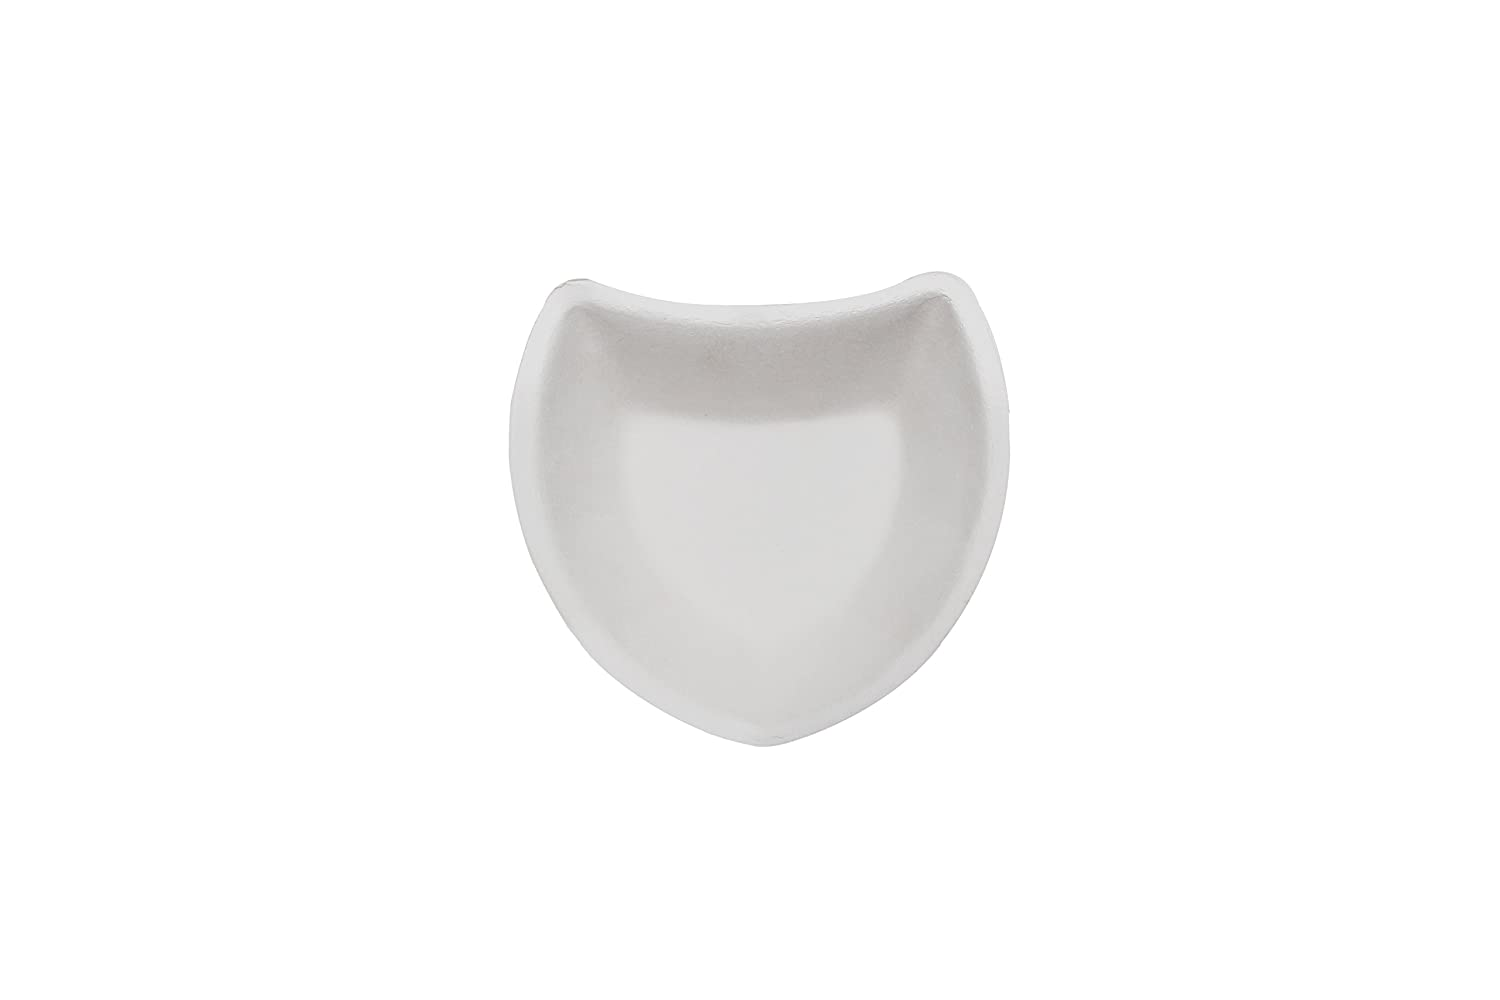 Buy TWI-Grabeco Biodegradable Disposable Pulp Party Heart